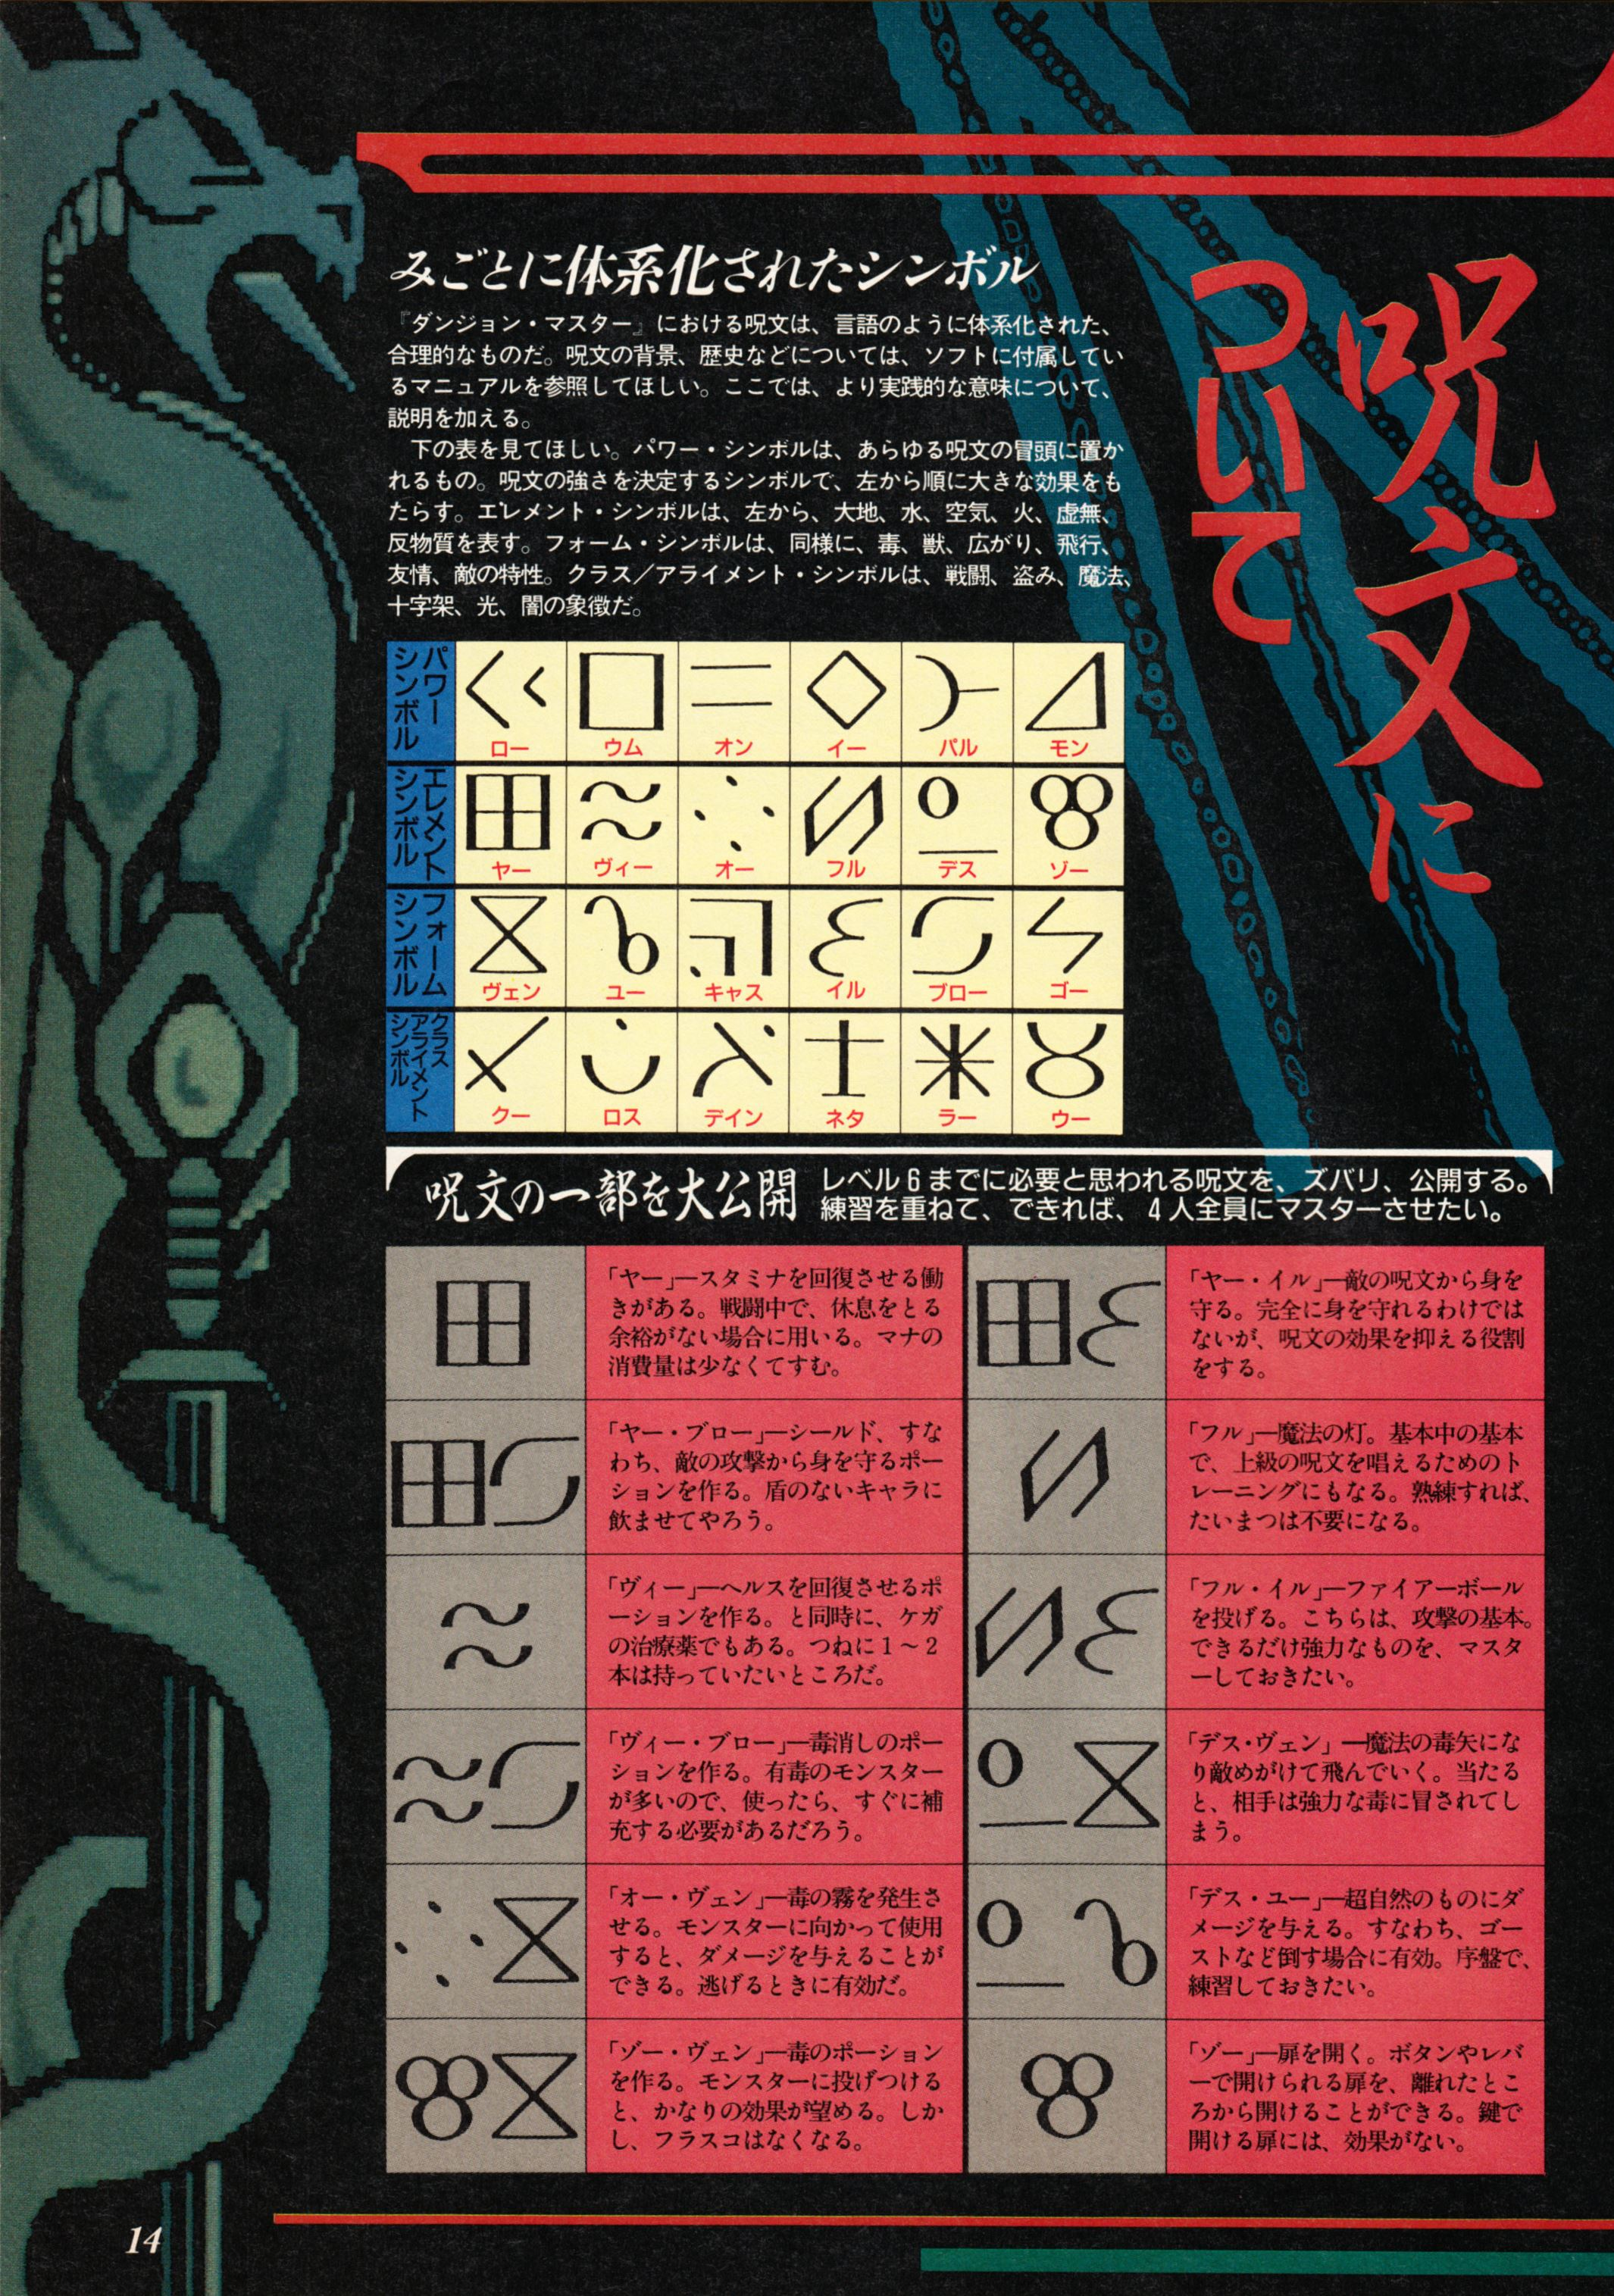 Supplement - Dungeon Master Companion Manual Guide published in Japanese magazine 'Popcom', Vol 4 No 1 01 April 1990, Page 16